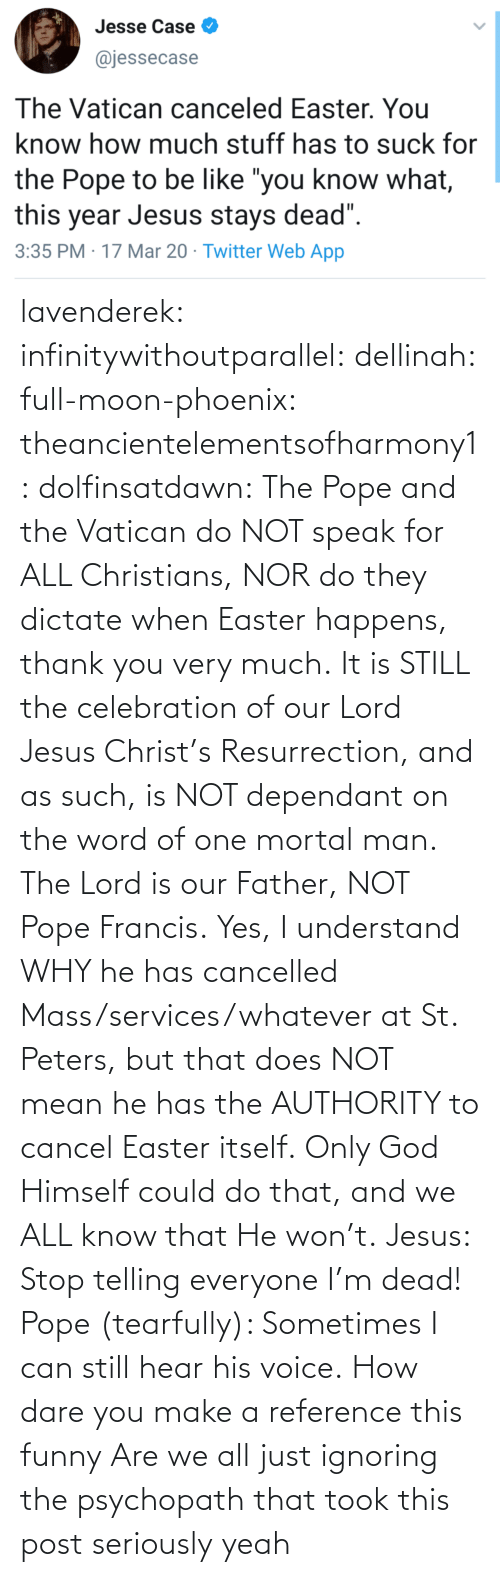 mass: lavenderek: infinitywithoutparallel:  dellinah:  full-moon-phoenix:   theancientelementsofharmony1:  dolfinsatdawn:    The Pope and the Vatican do NOT speak for ALL Christians, NOR do they dictate when Easter happens, thank you very much. It is STILL the celebration of our Lord Jesus Christ's Resurrection, and as such, is NOT dependant on the word of one mortal man. The Lord is our Father, NOT Pope Francis. Yes, I understand WHY he has cancelled Mass/services/whatever at St. Peters, but that does NOT mean he has the AUTHORITY to cancel Easter itself. Only God Himself could do that, and we ALL know that He won't.    Jesus: Stop telling everyone I'm dead! Pope (tearfully): Sometimes I can still hear his voice.    How dare you make a reference this funny    Are we all just ignoring the psychopath that took this post seriously     yeah